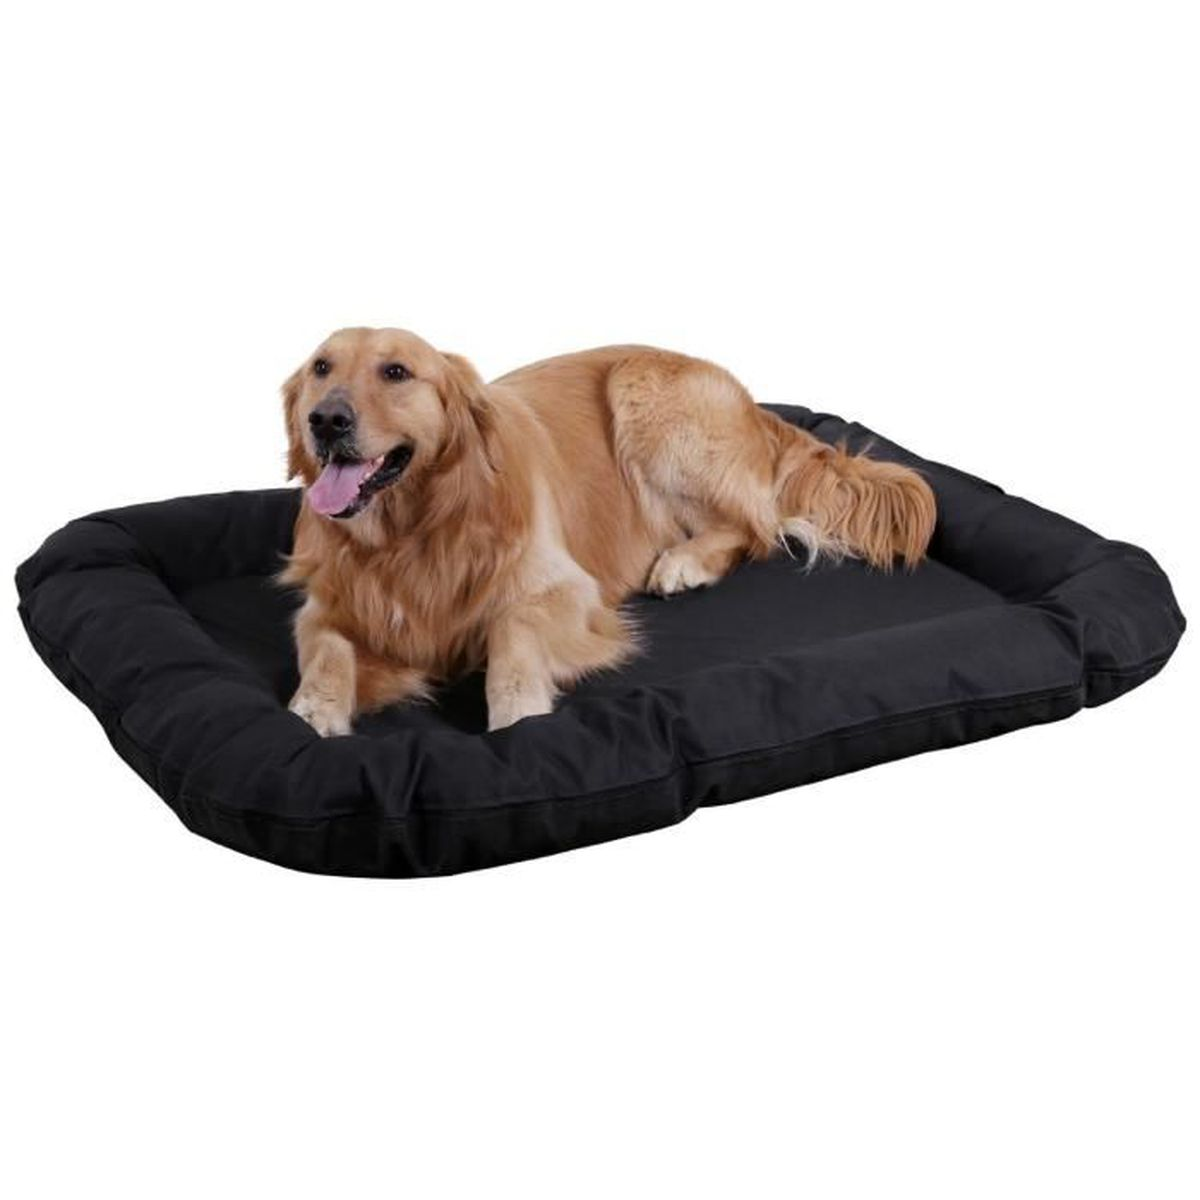 coussin matelas pour chien panier chien dog bed xxl 120 x. Black Bedroom Furniture Sets. Home Design Ideas